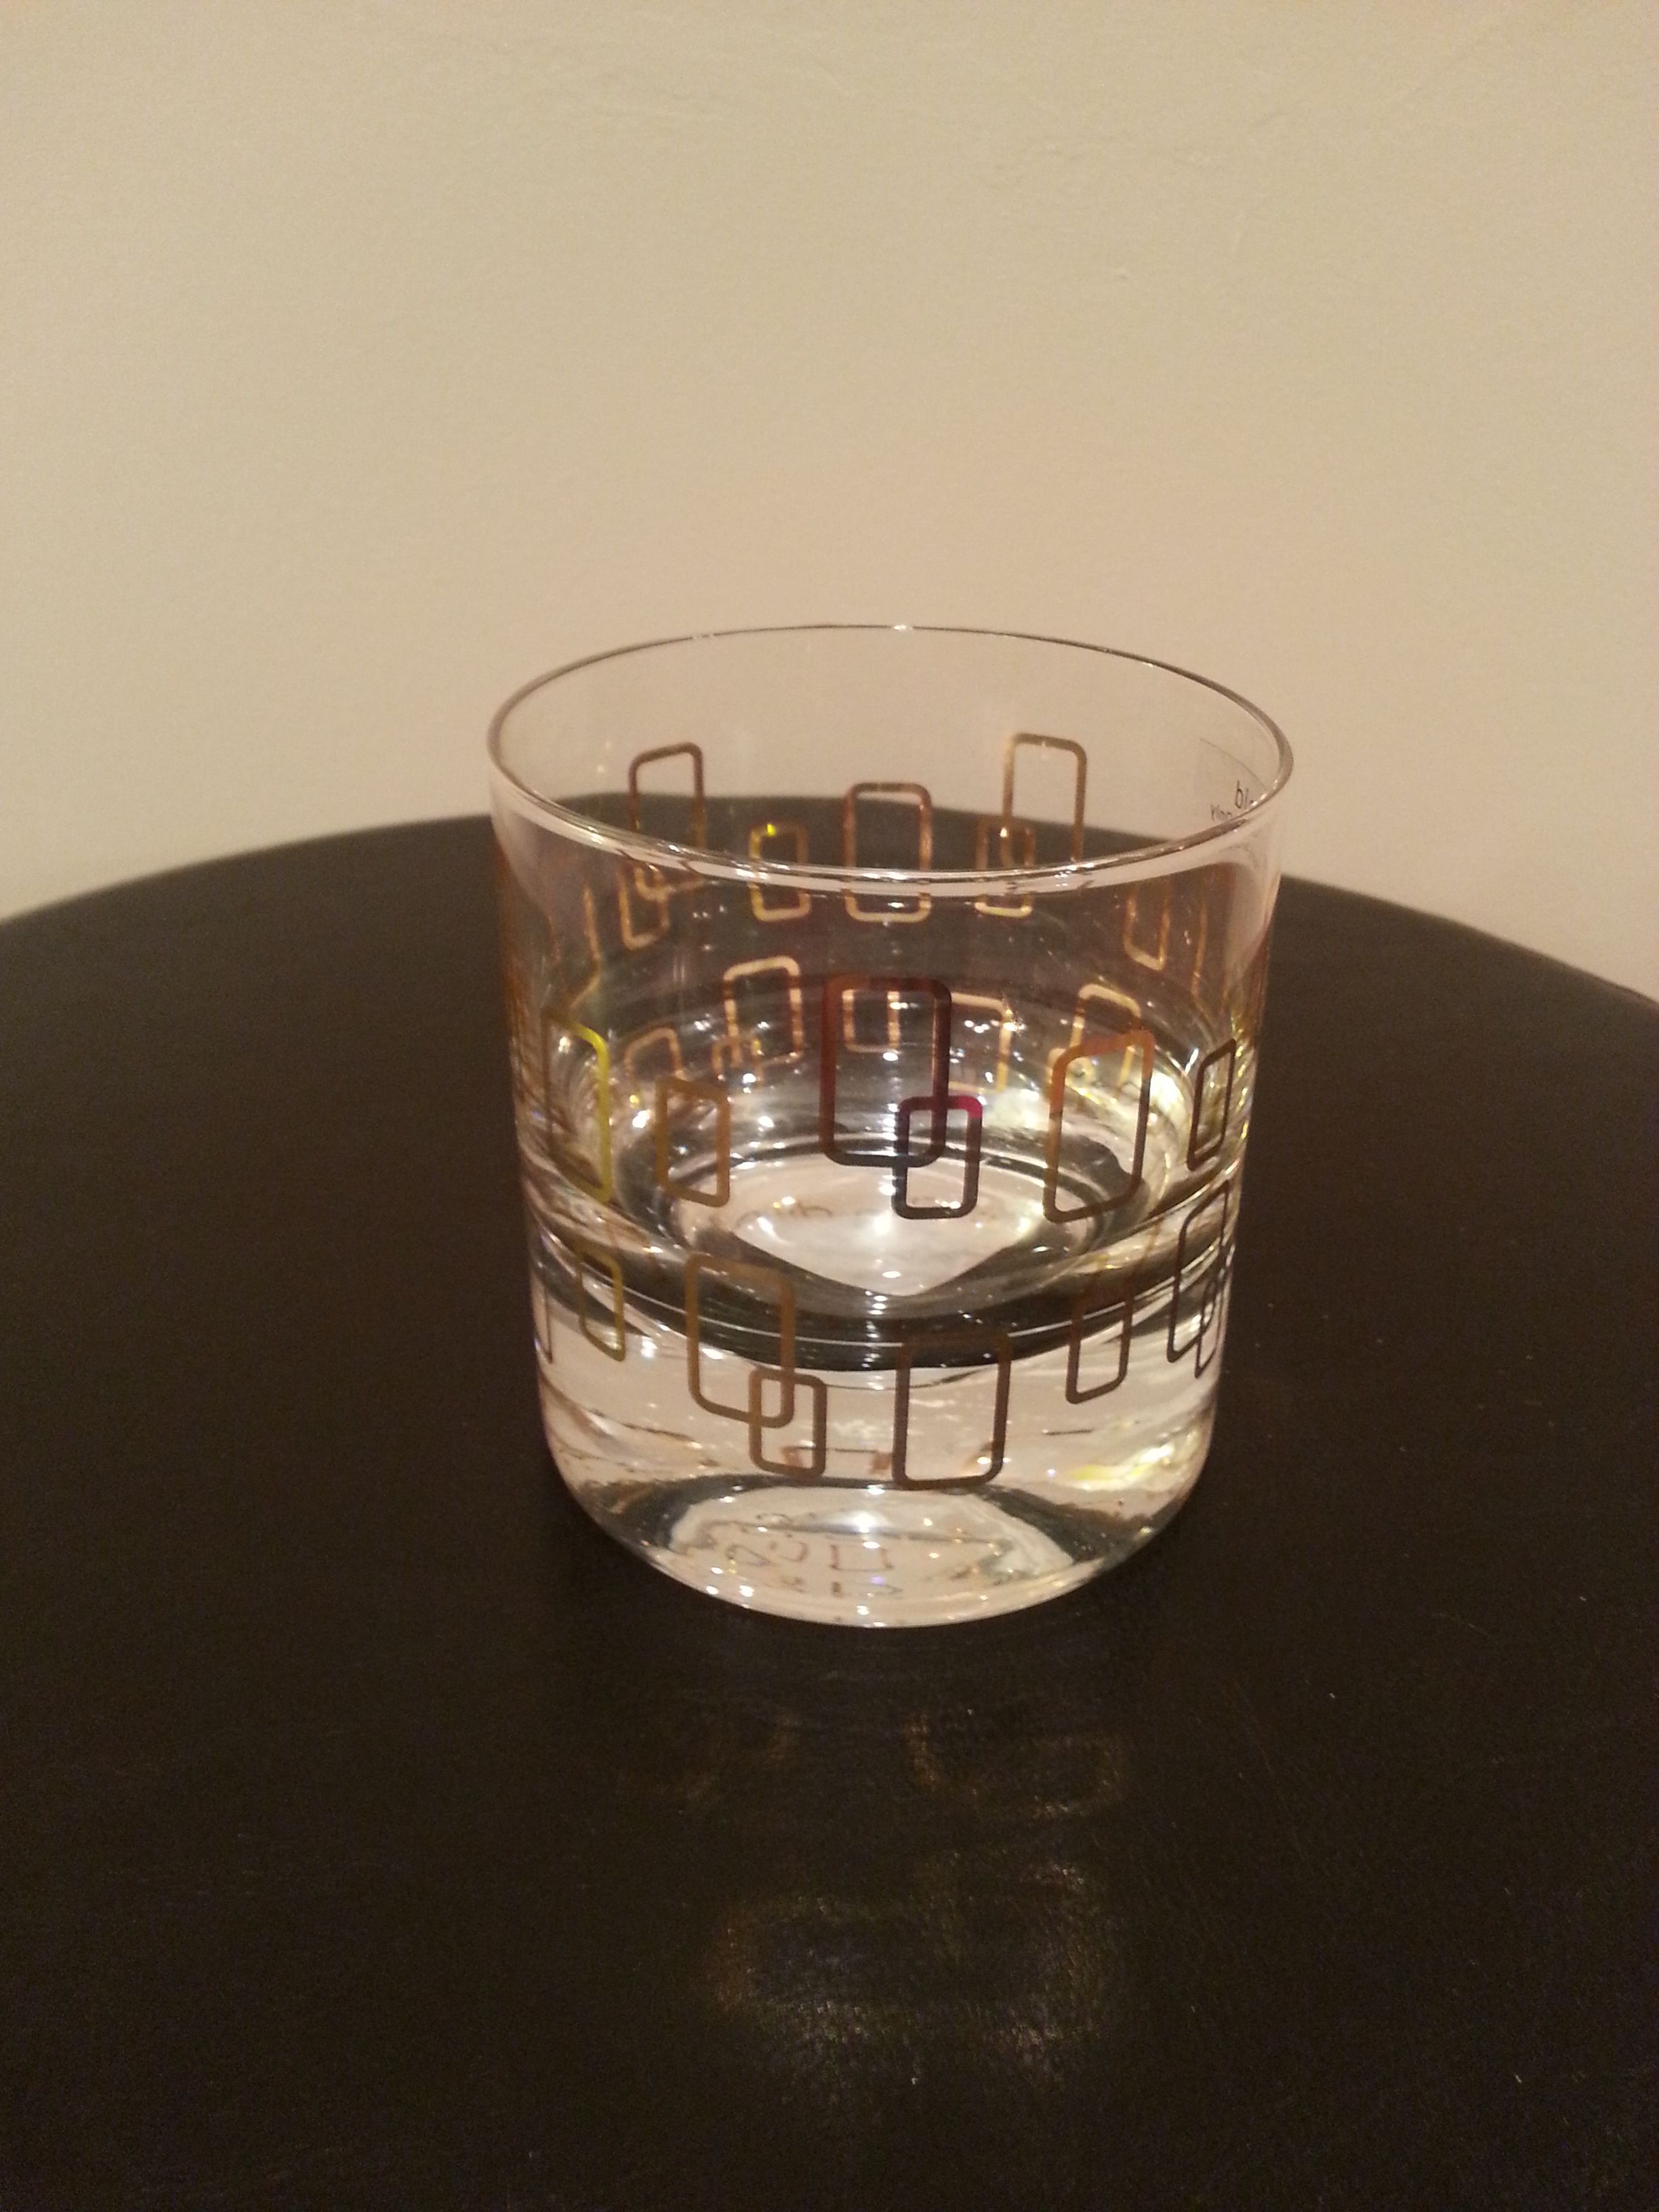 Item #11 - Gold Pattern Glass for Guest Table Decor (Hold Candle) from Home Goods